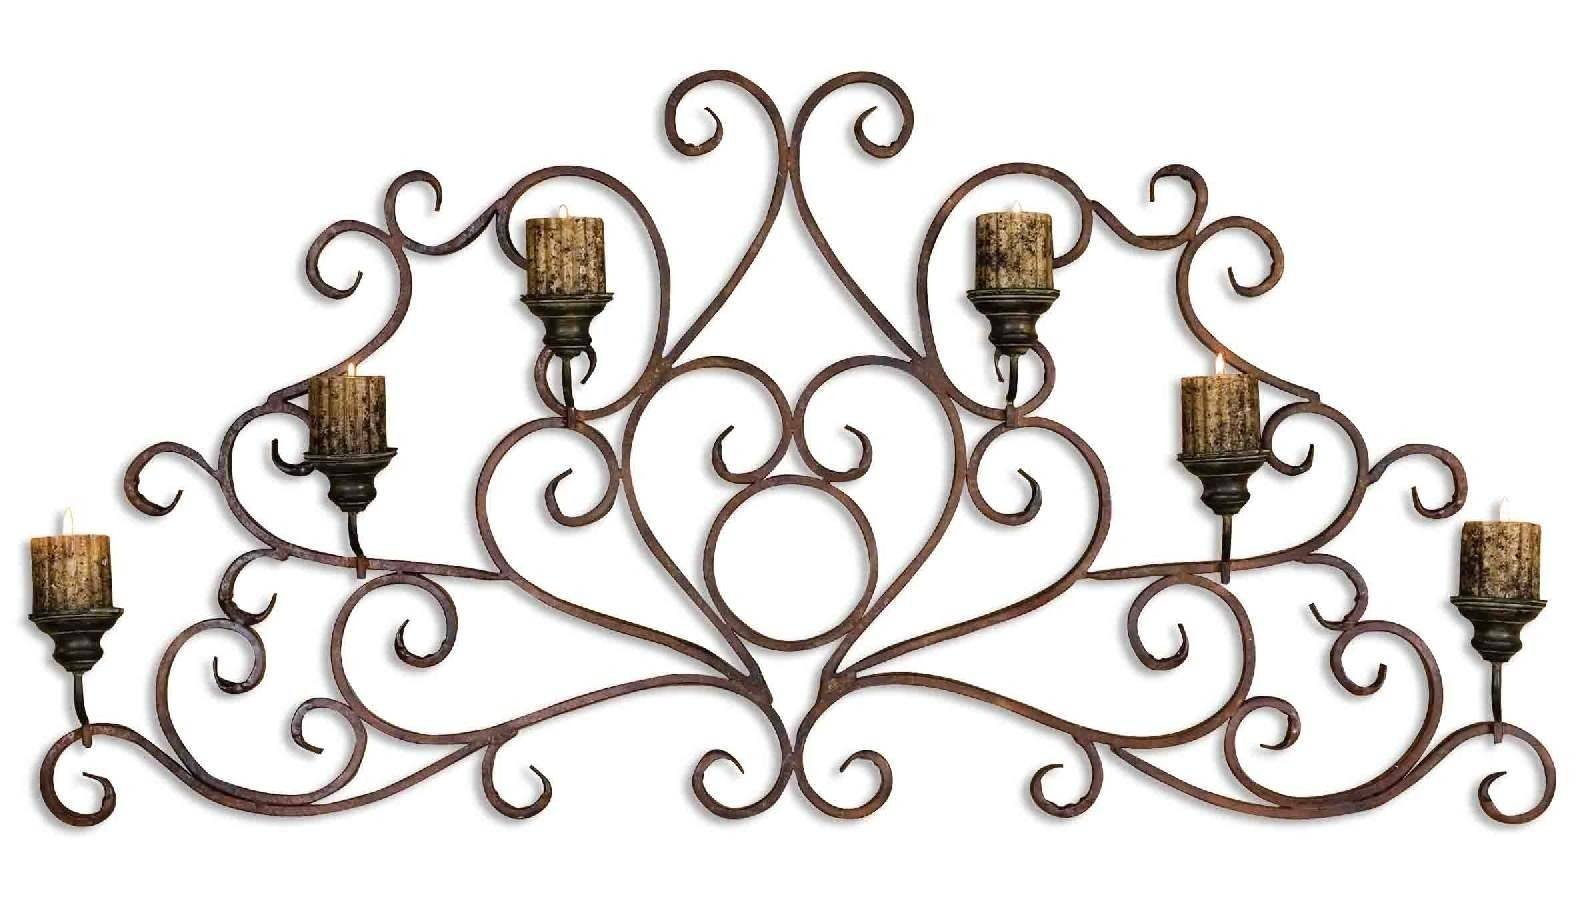 Uttermost Juliana Metal Wall Art Sconce | Rug Super Center intended for 2017 Uttermost Metal Wall Art